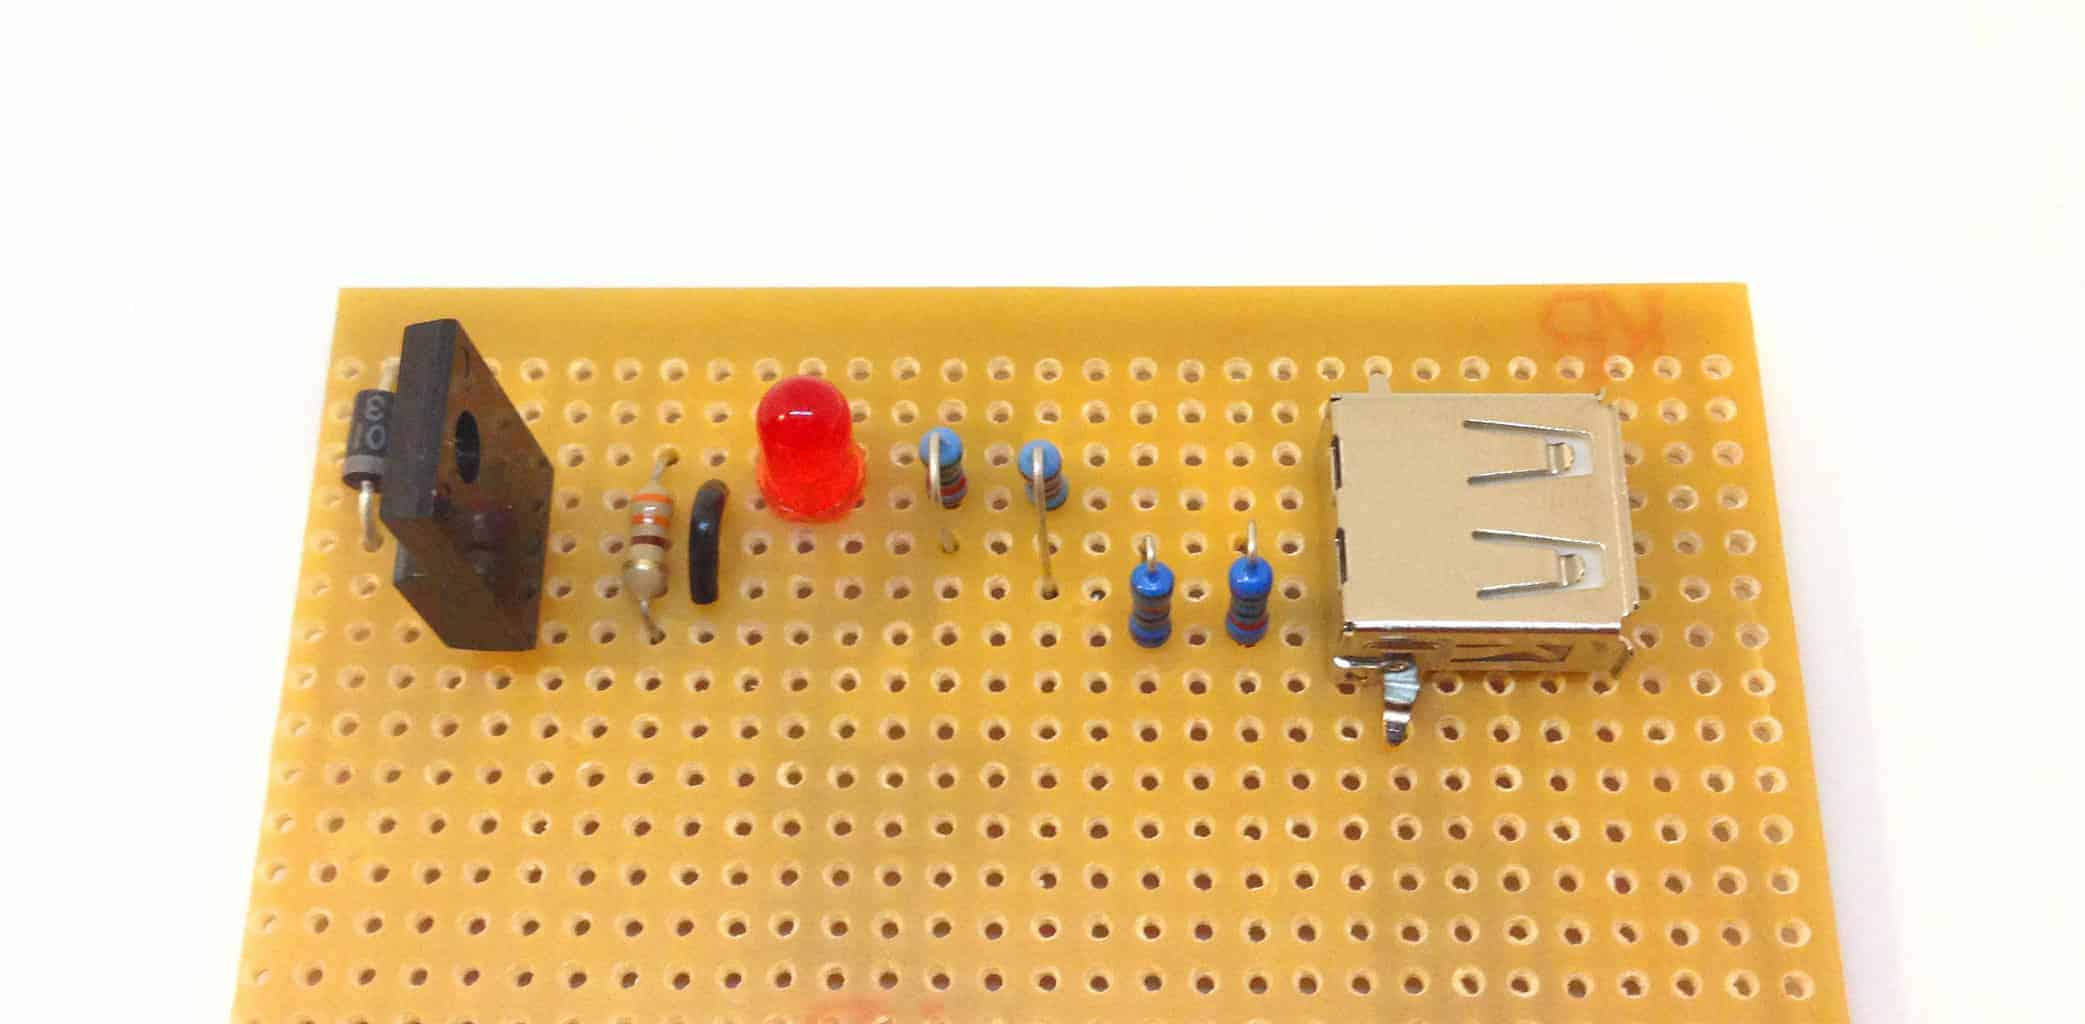 Portable USB Charger Circuit - Build Electronic Circuits